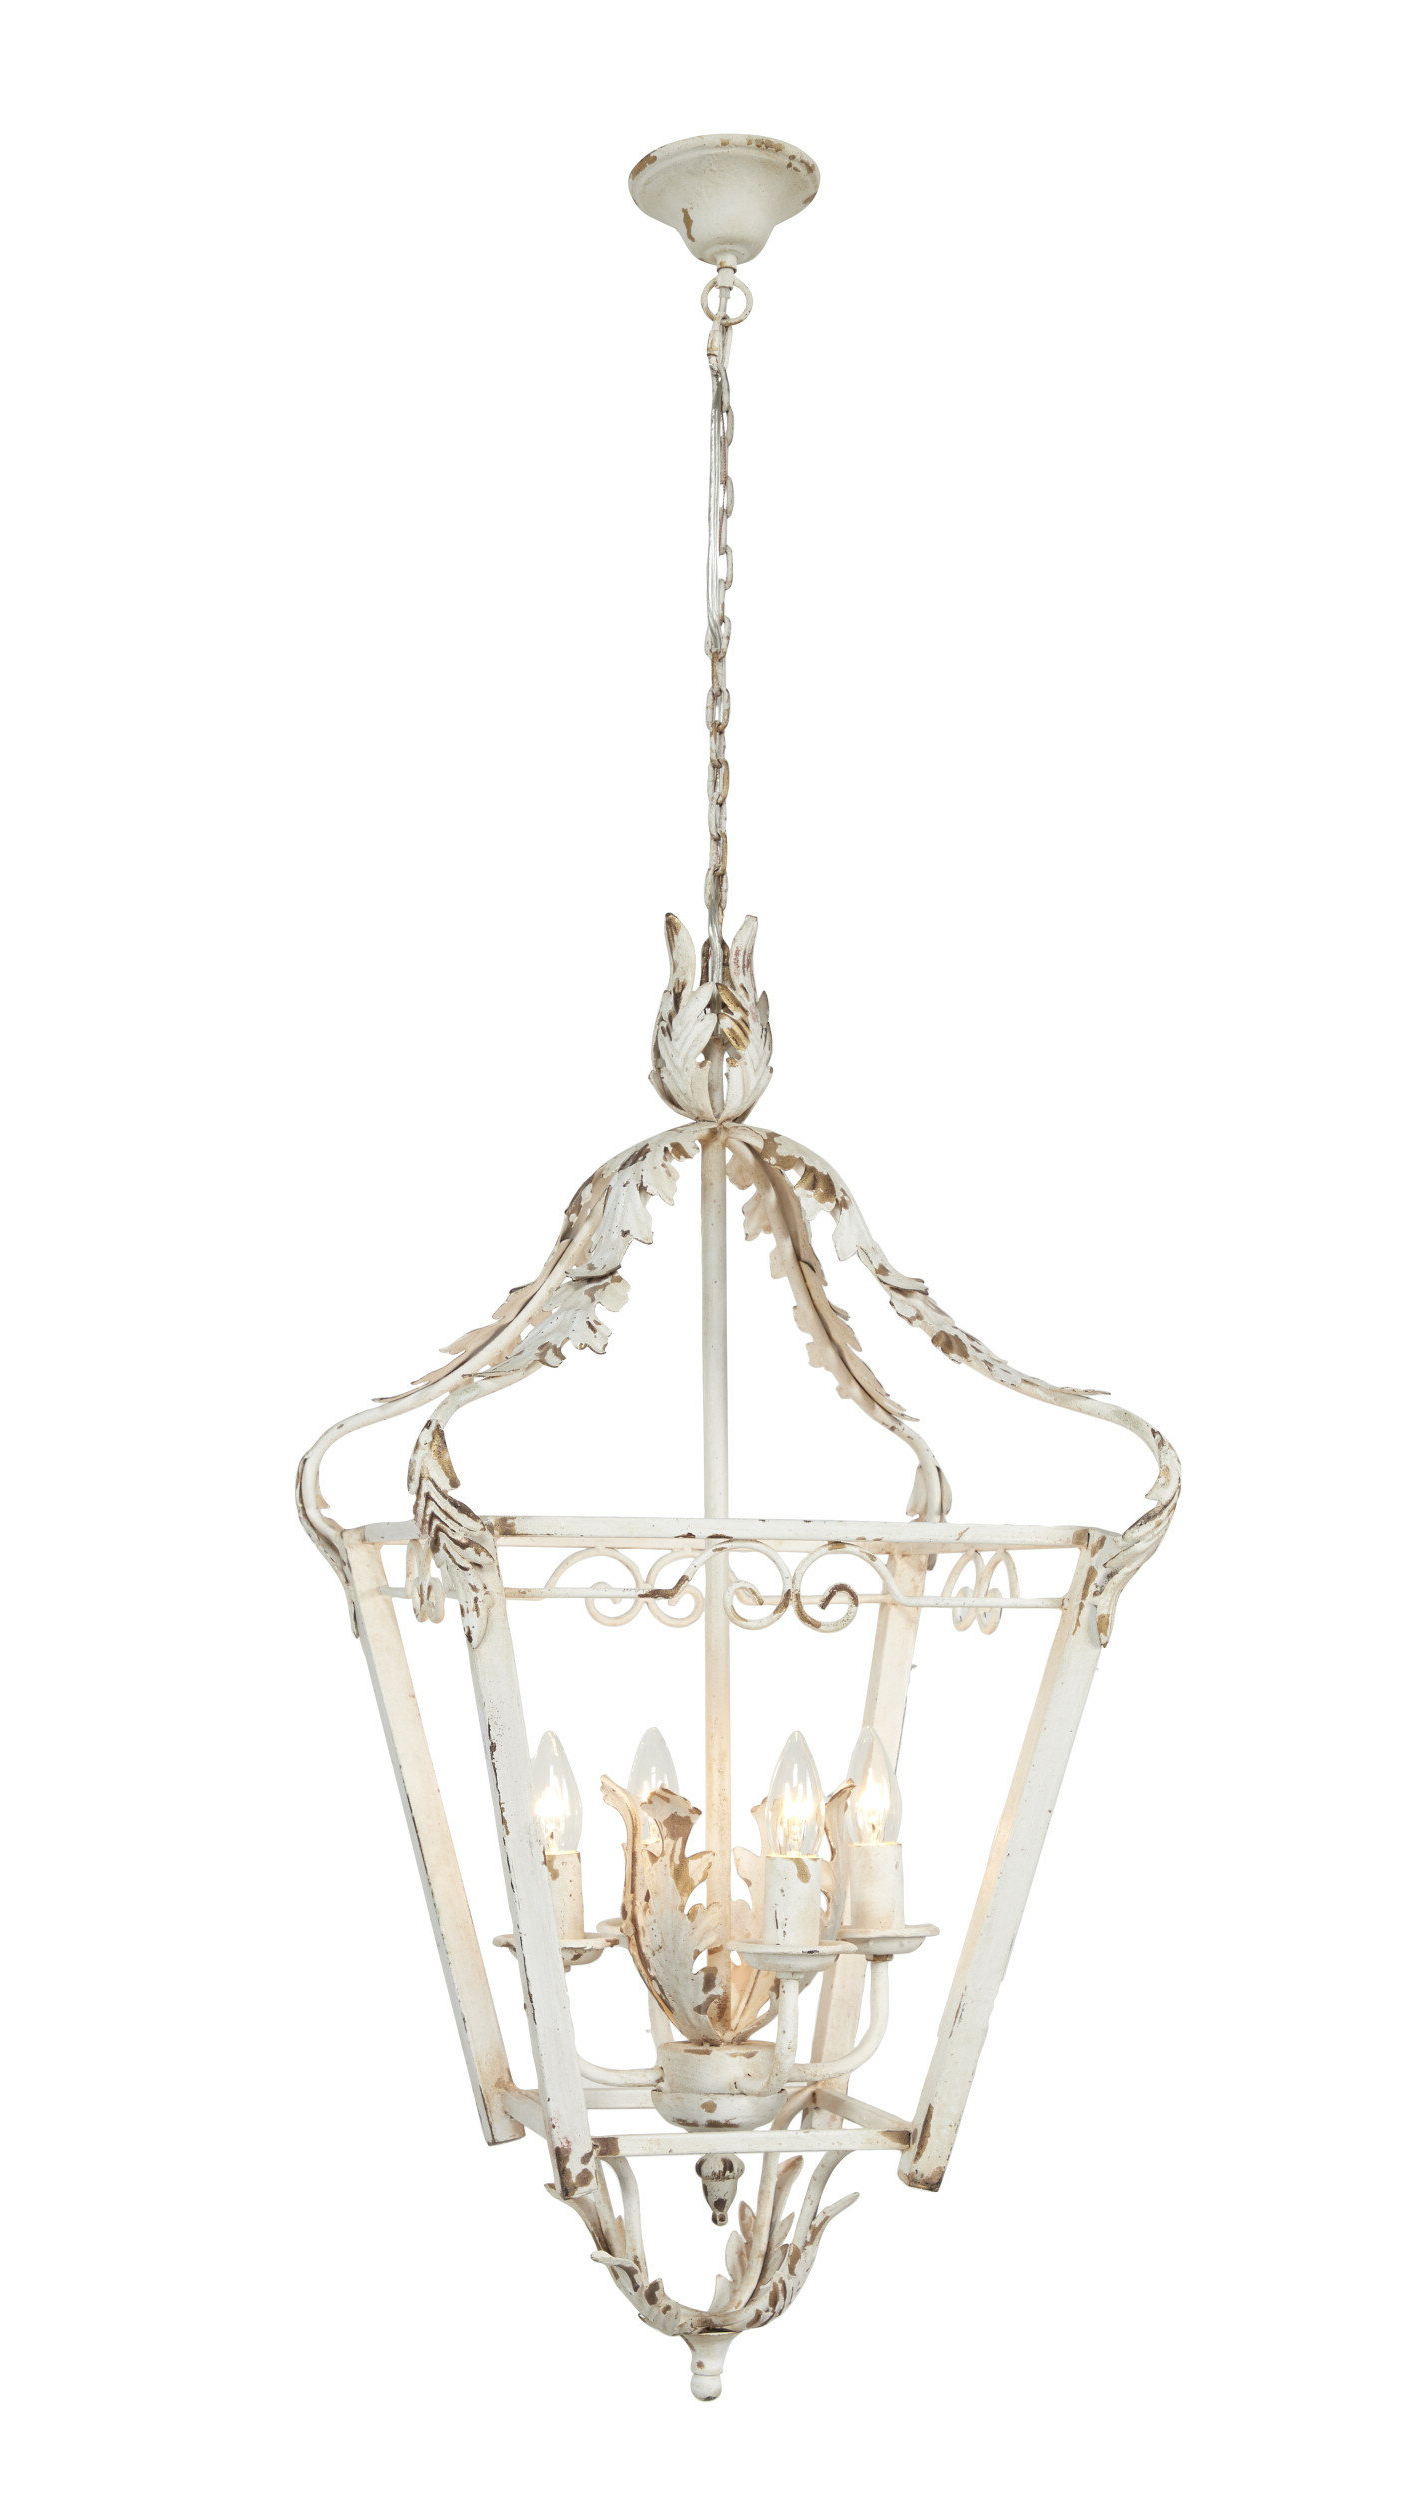 Conte Small Metal 4 Light Lantern Chandelier Pertaining To Best And Newest Tiana 4 Light Geometric Chandeliers (Gallery 6 of 20)